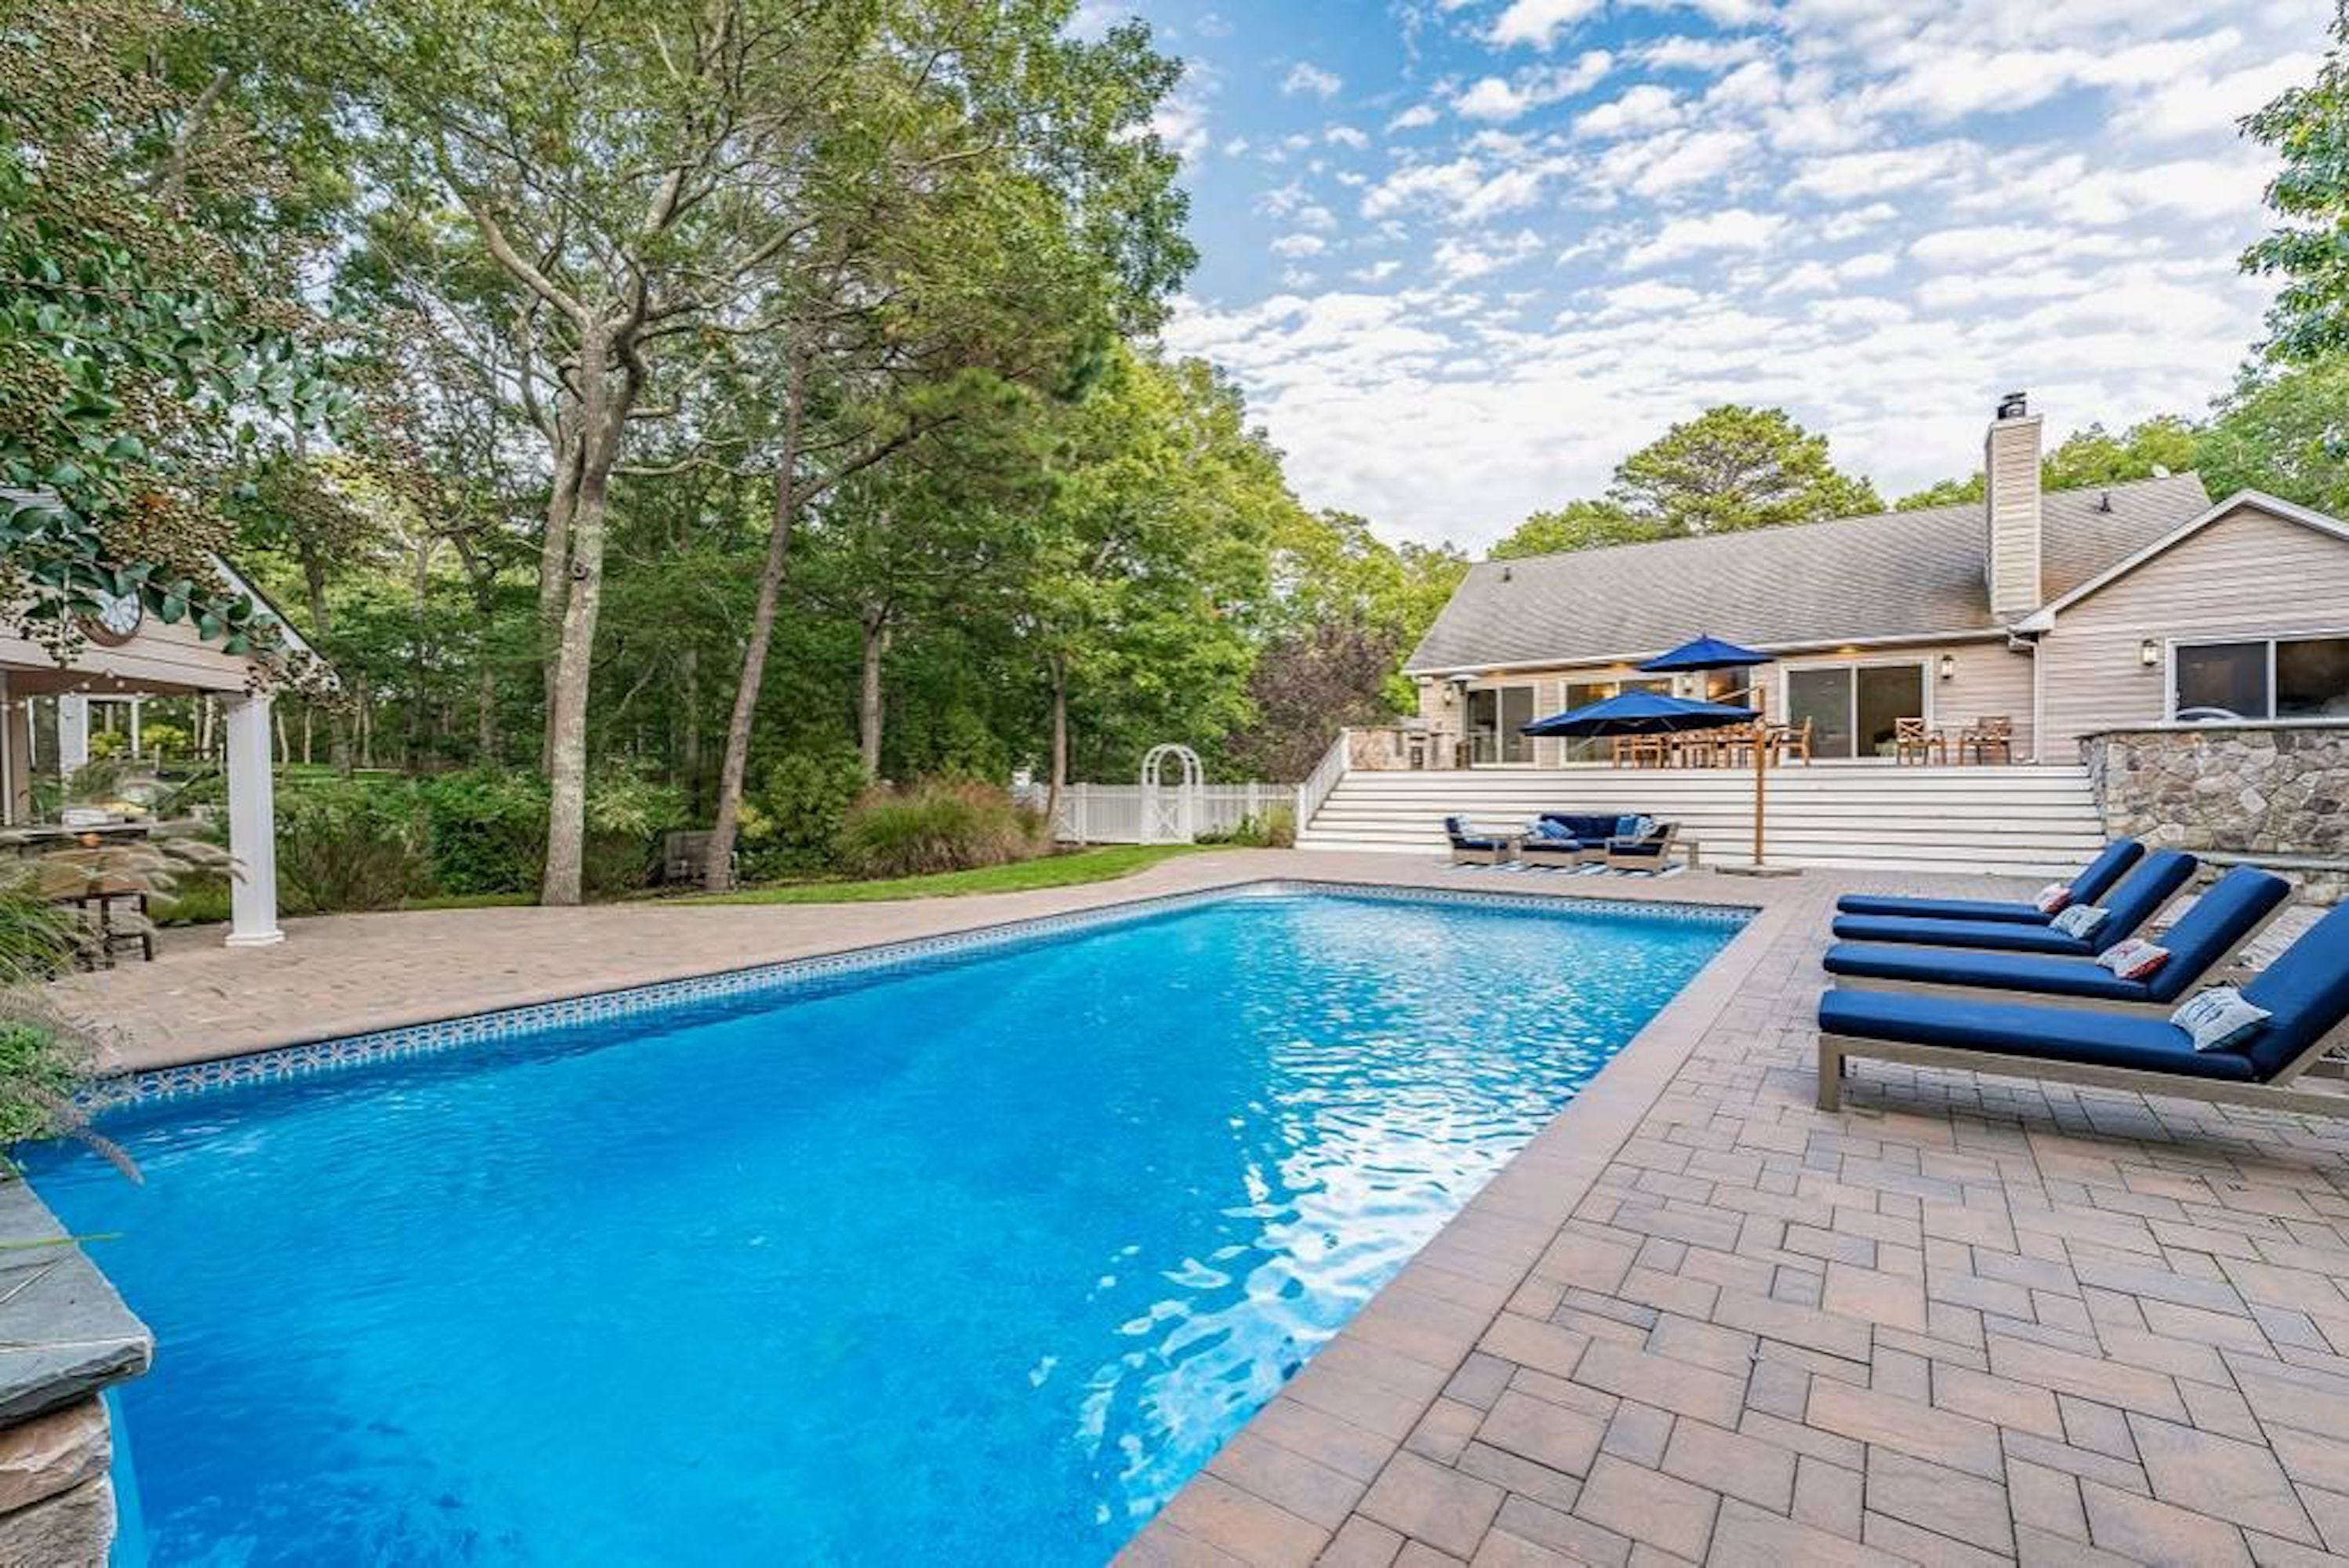 20 Affordable Hamptons Airbnbs To Rent With Friends This Summer